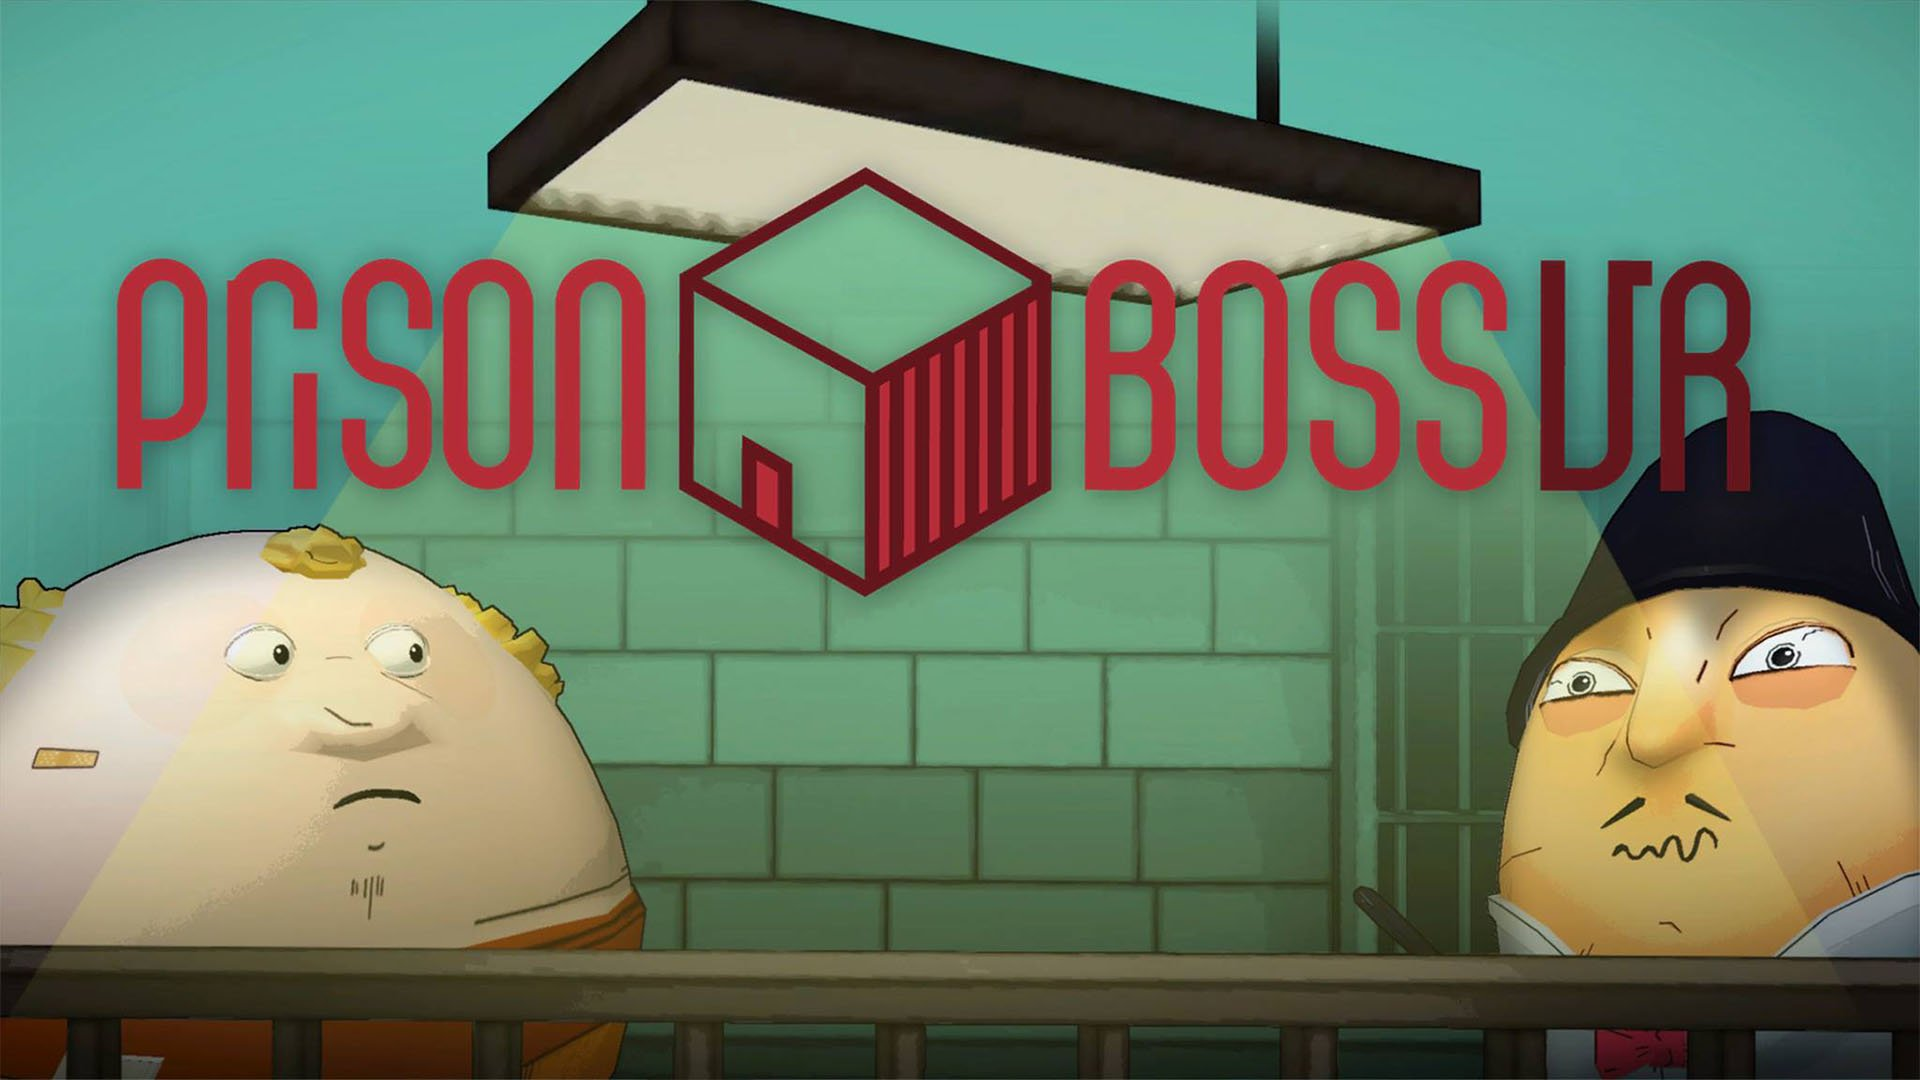 Prison Boss VR (PSVR) Review